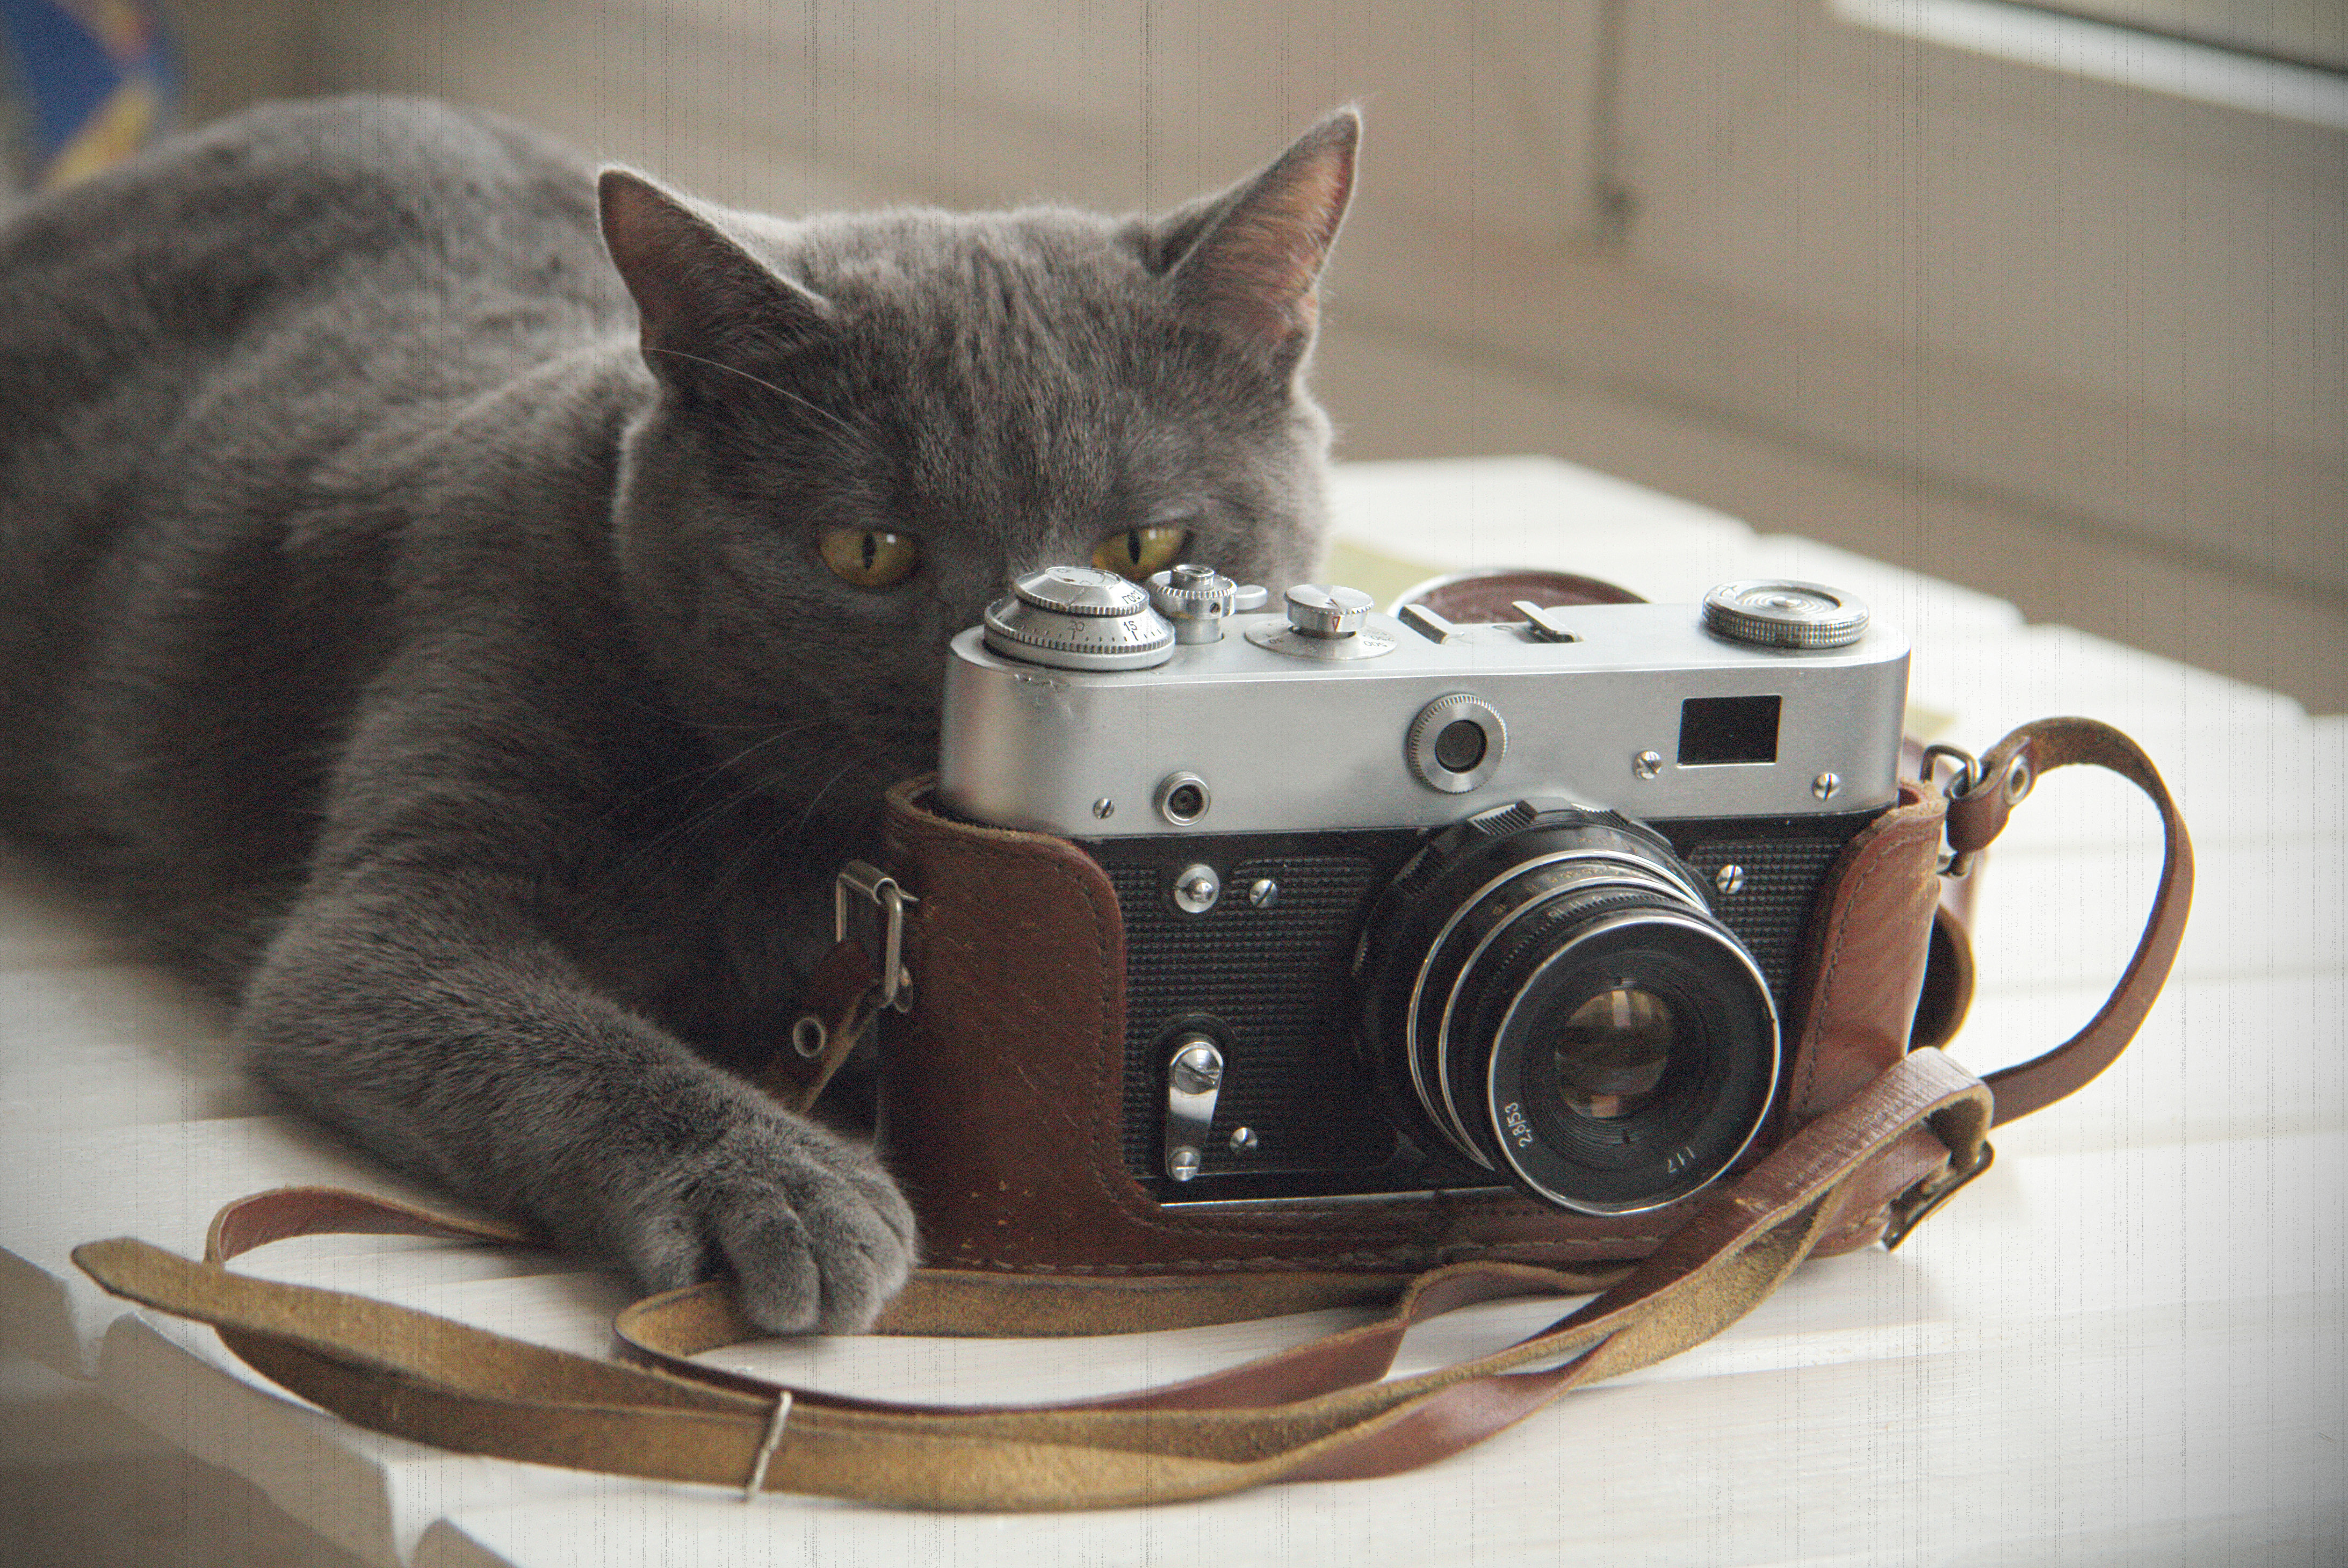 A cat in front of a camera, positioned as if to take a picture